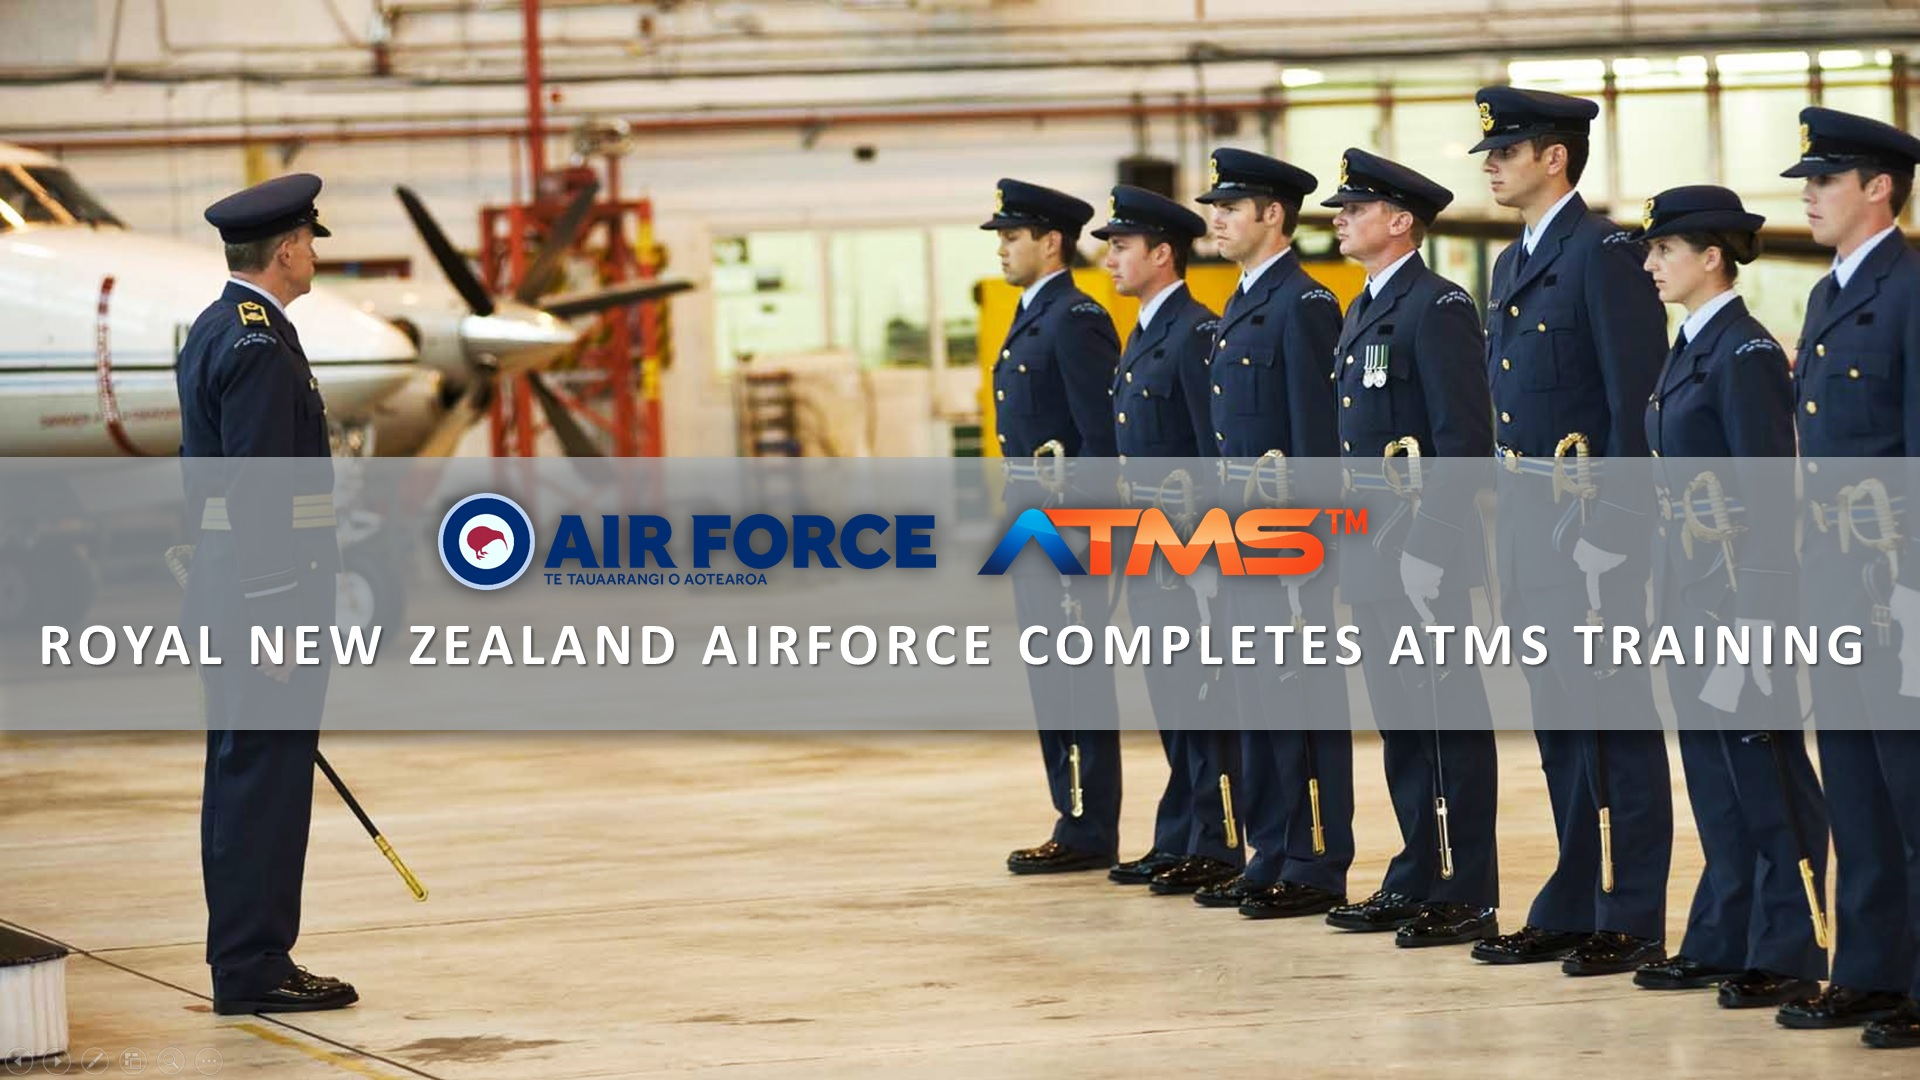 Royal New Zealand Air Force Completes ATMS Training